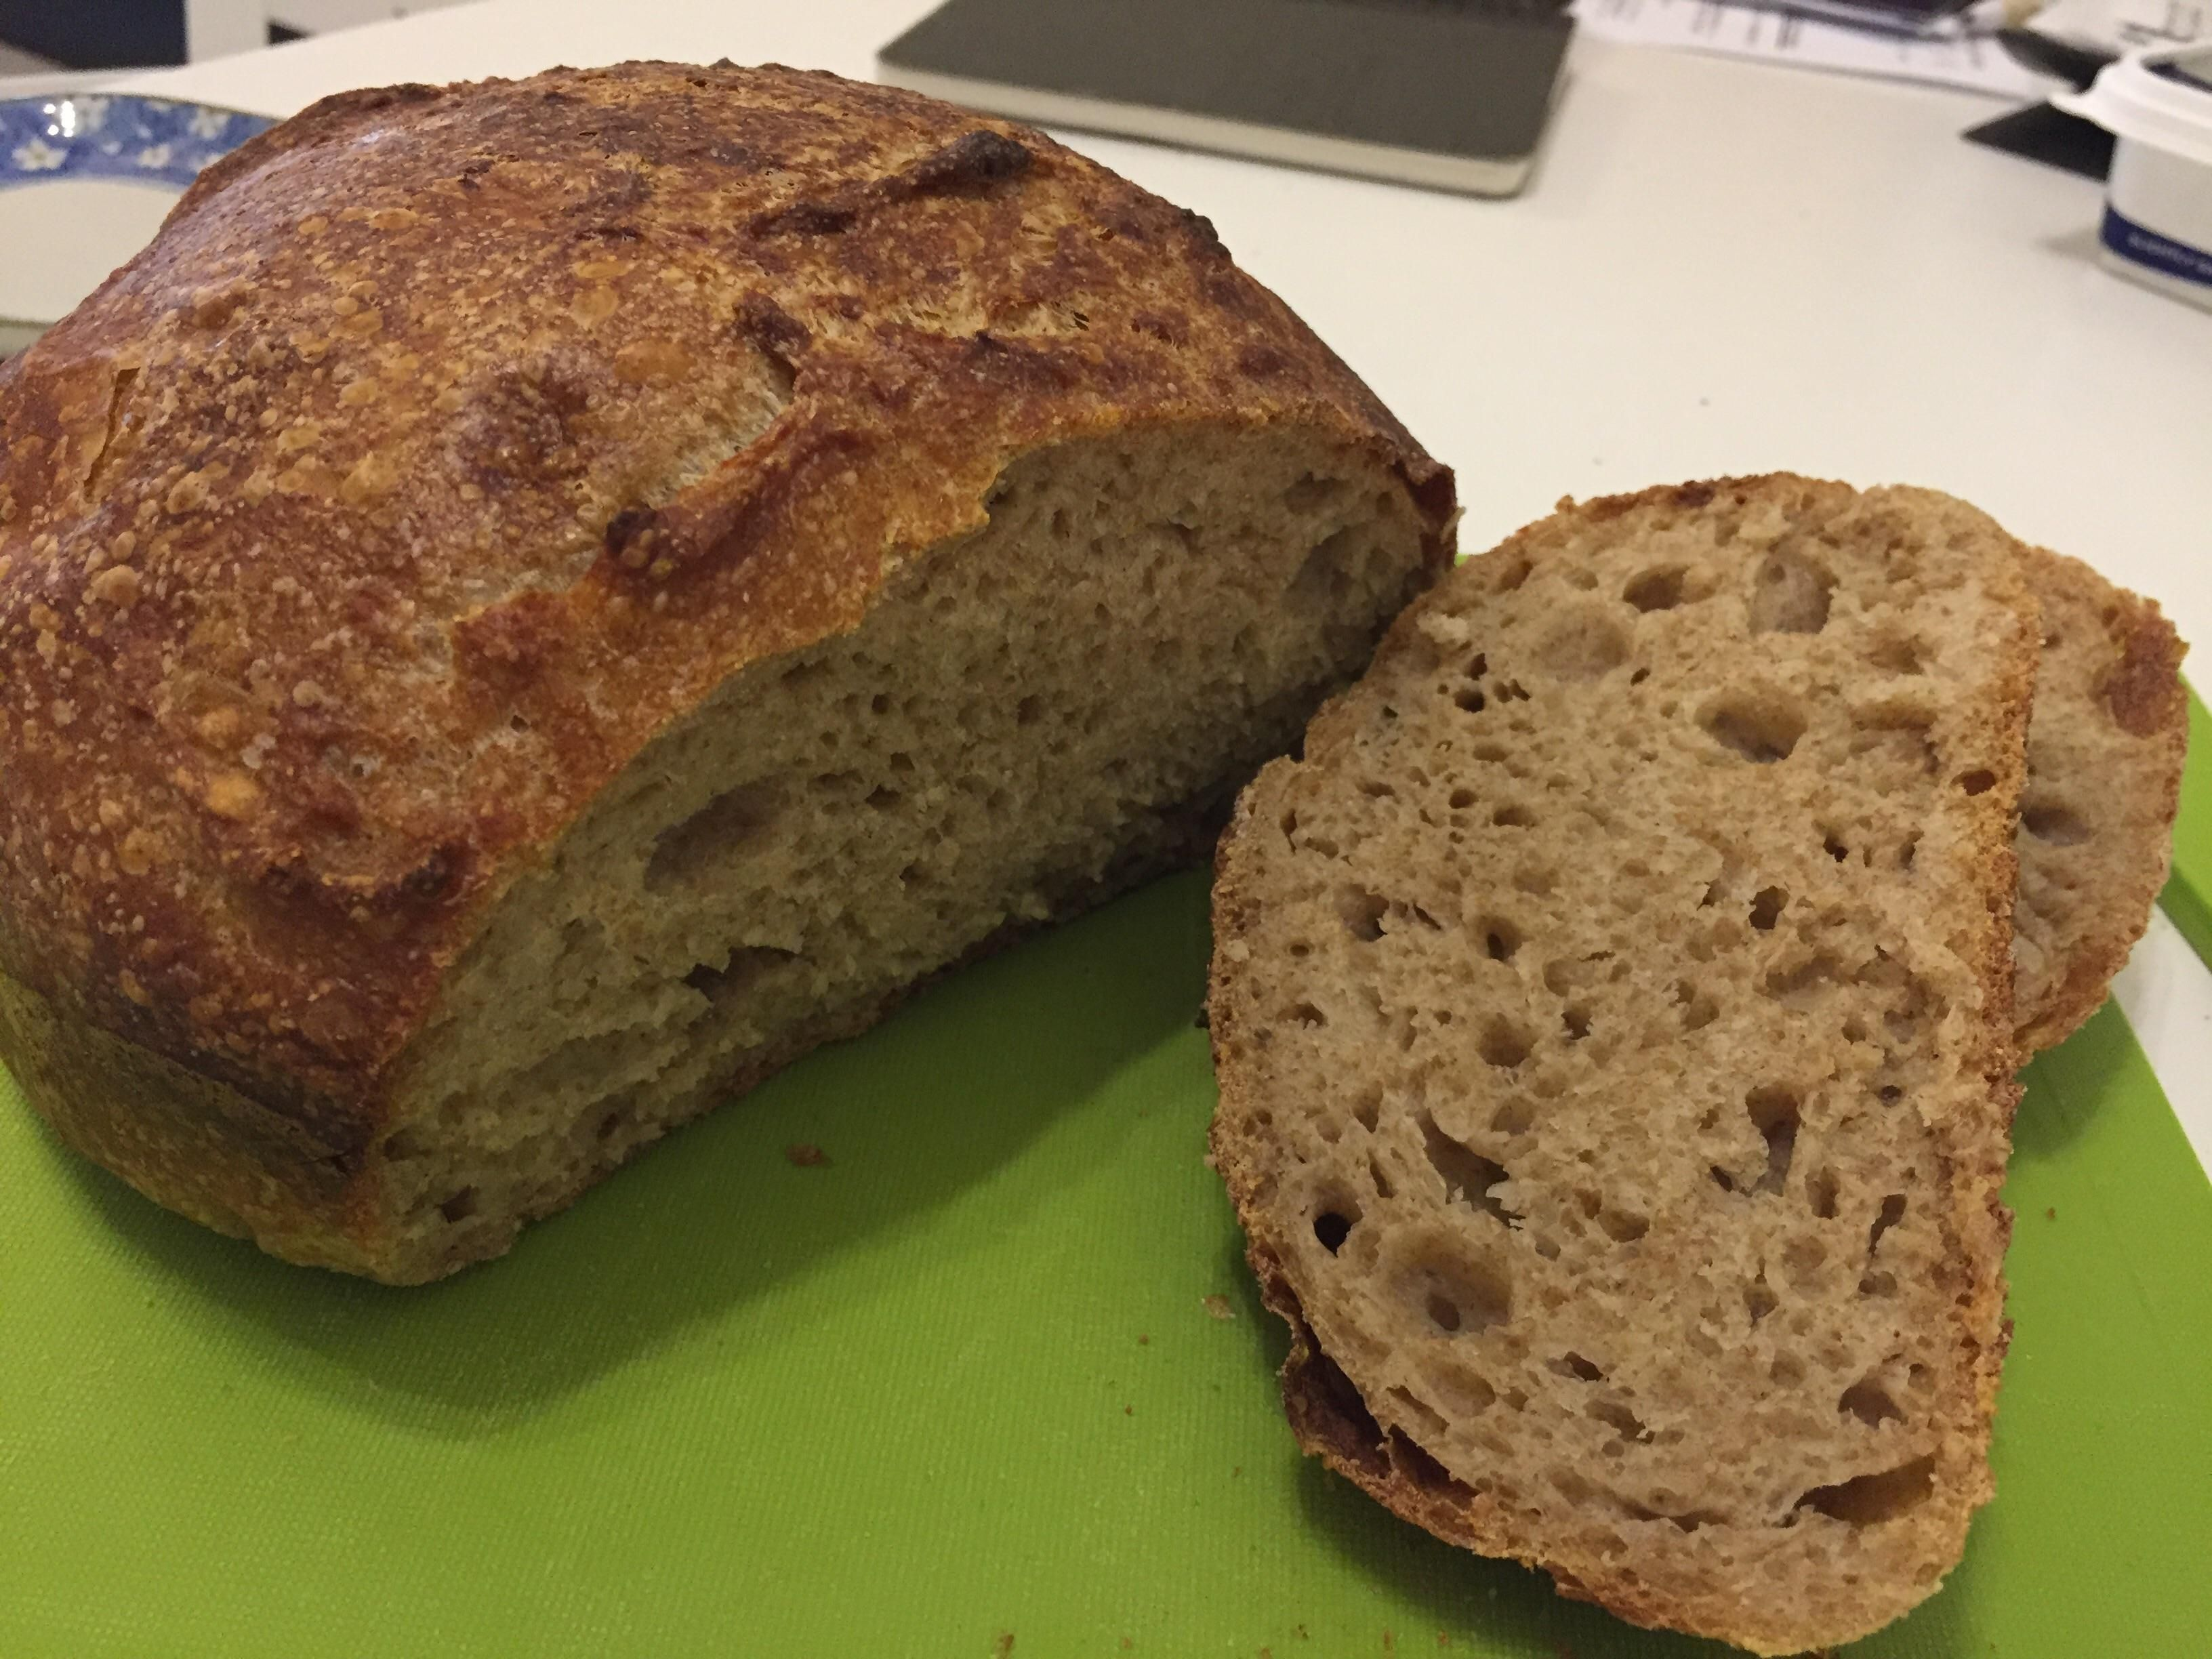 Fwsy Overnight 40 Whole Wheat How Can I Stop It From Sticking To